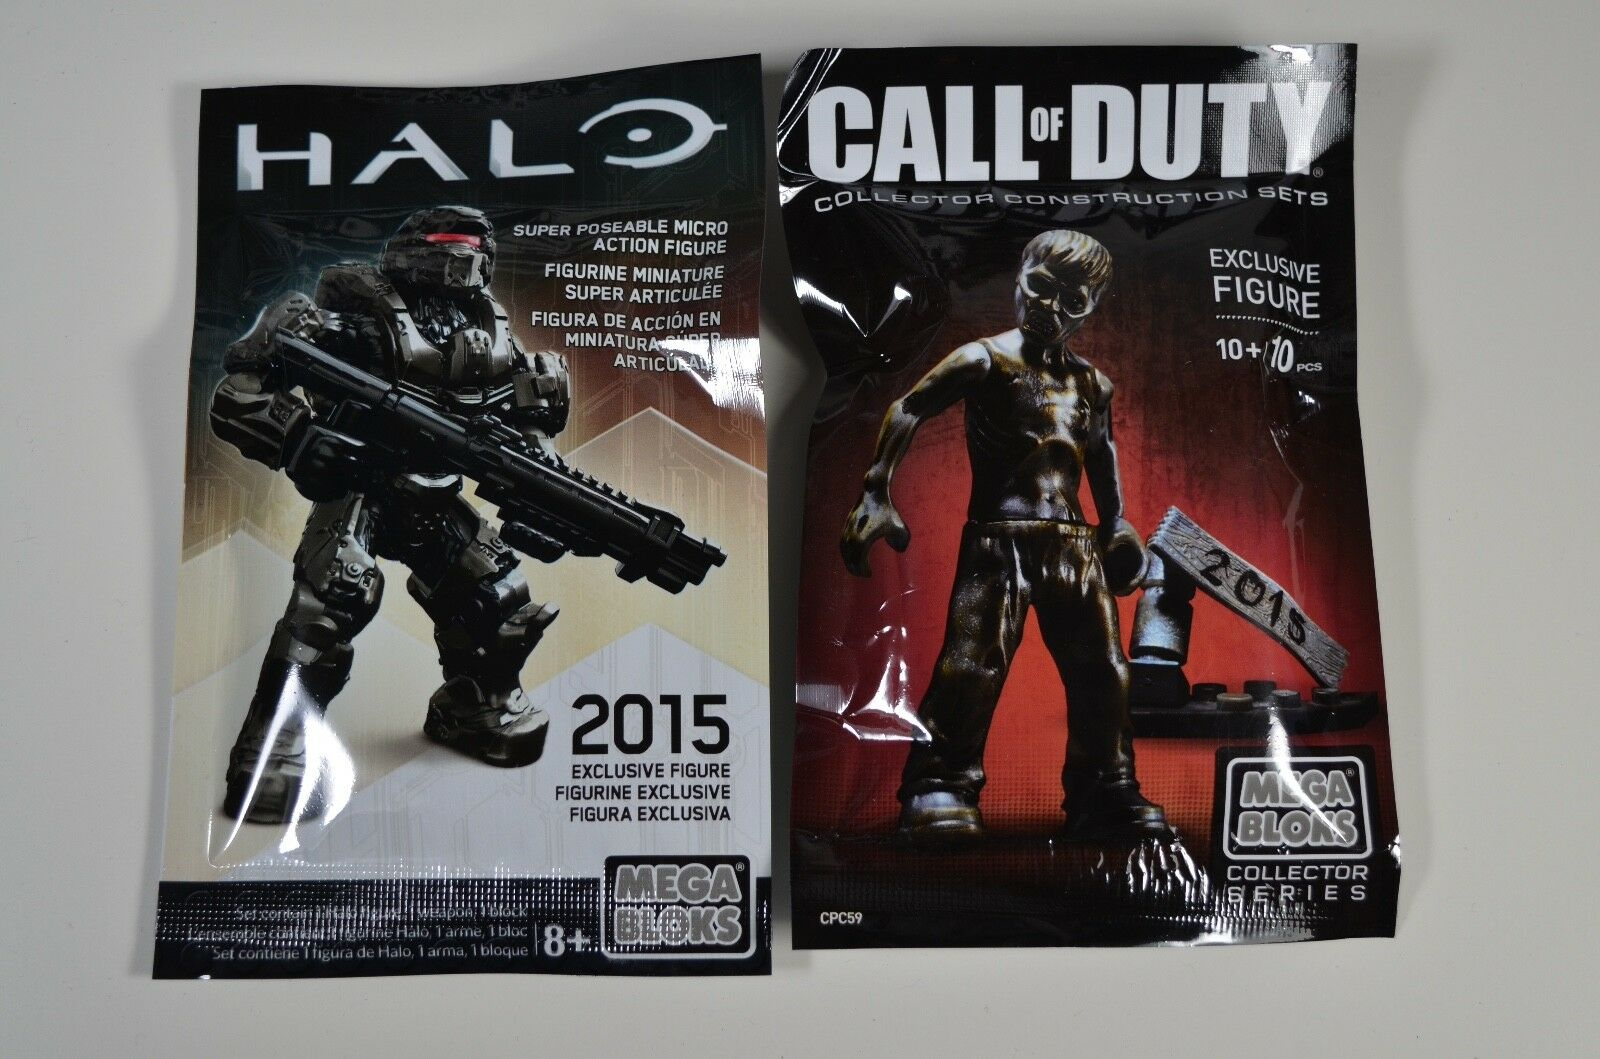 MEGA BLOKS CALL OF DUTY 2016 FAN EXPO EXCLUSIVE FIGURE MODEL DPW88 ACTIVISION